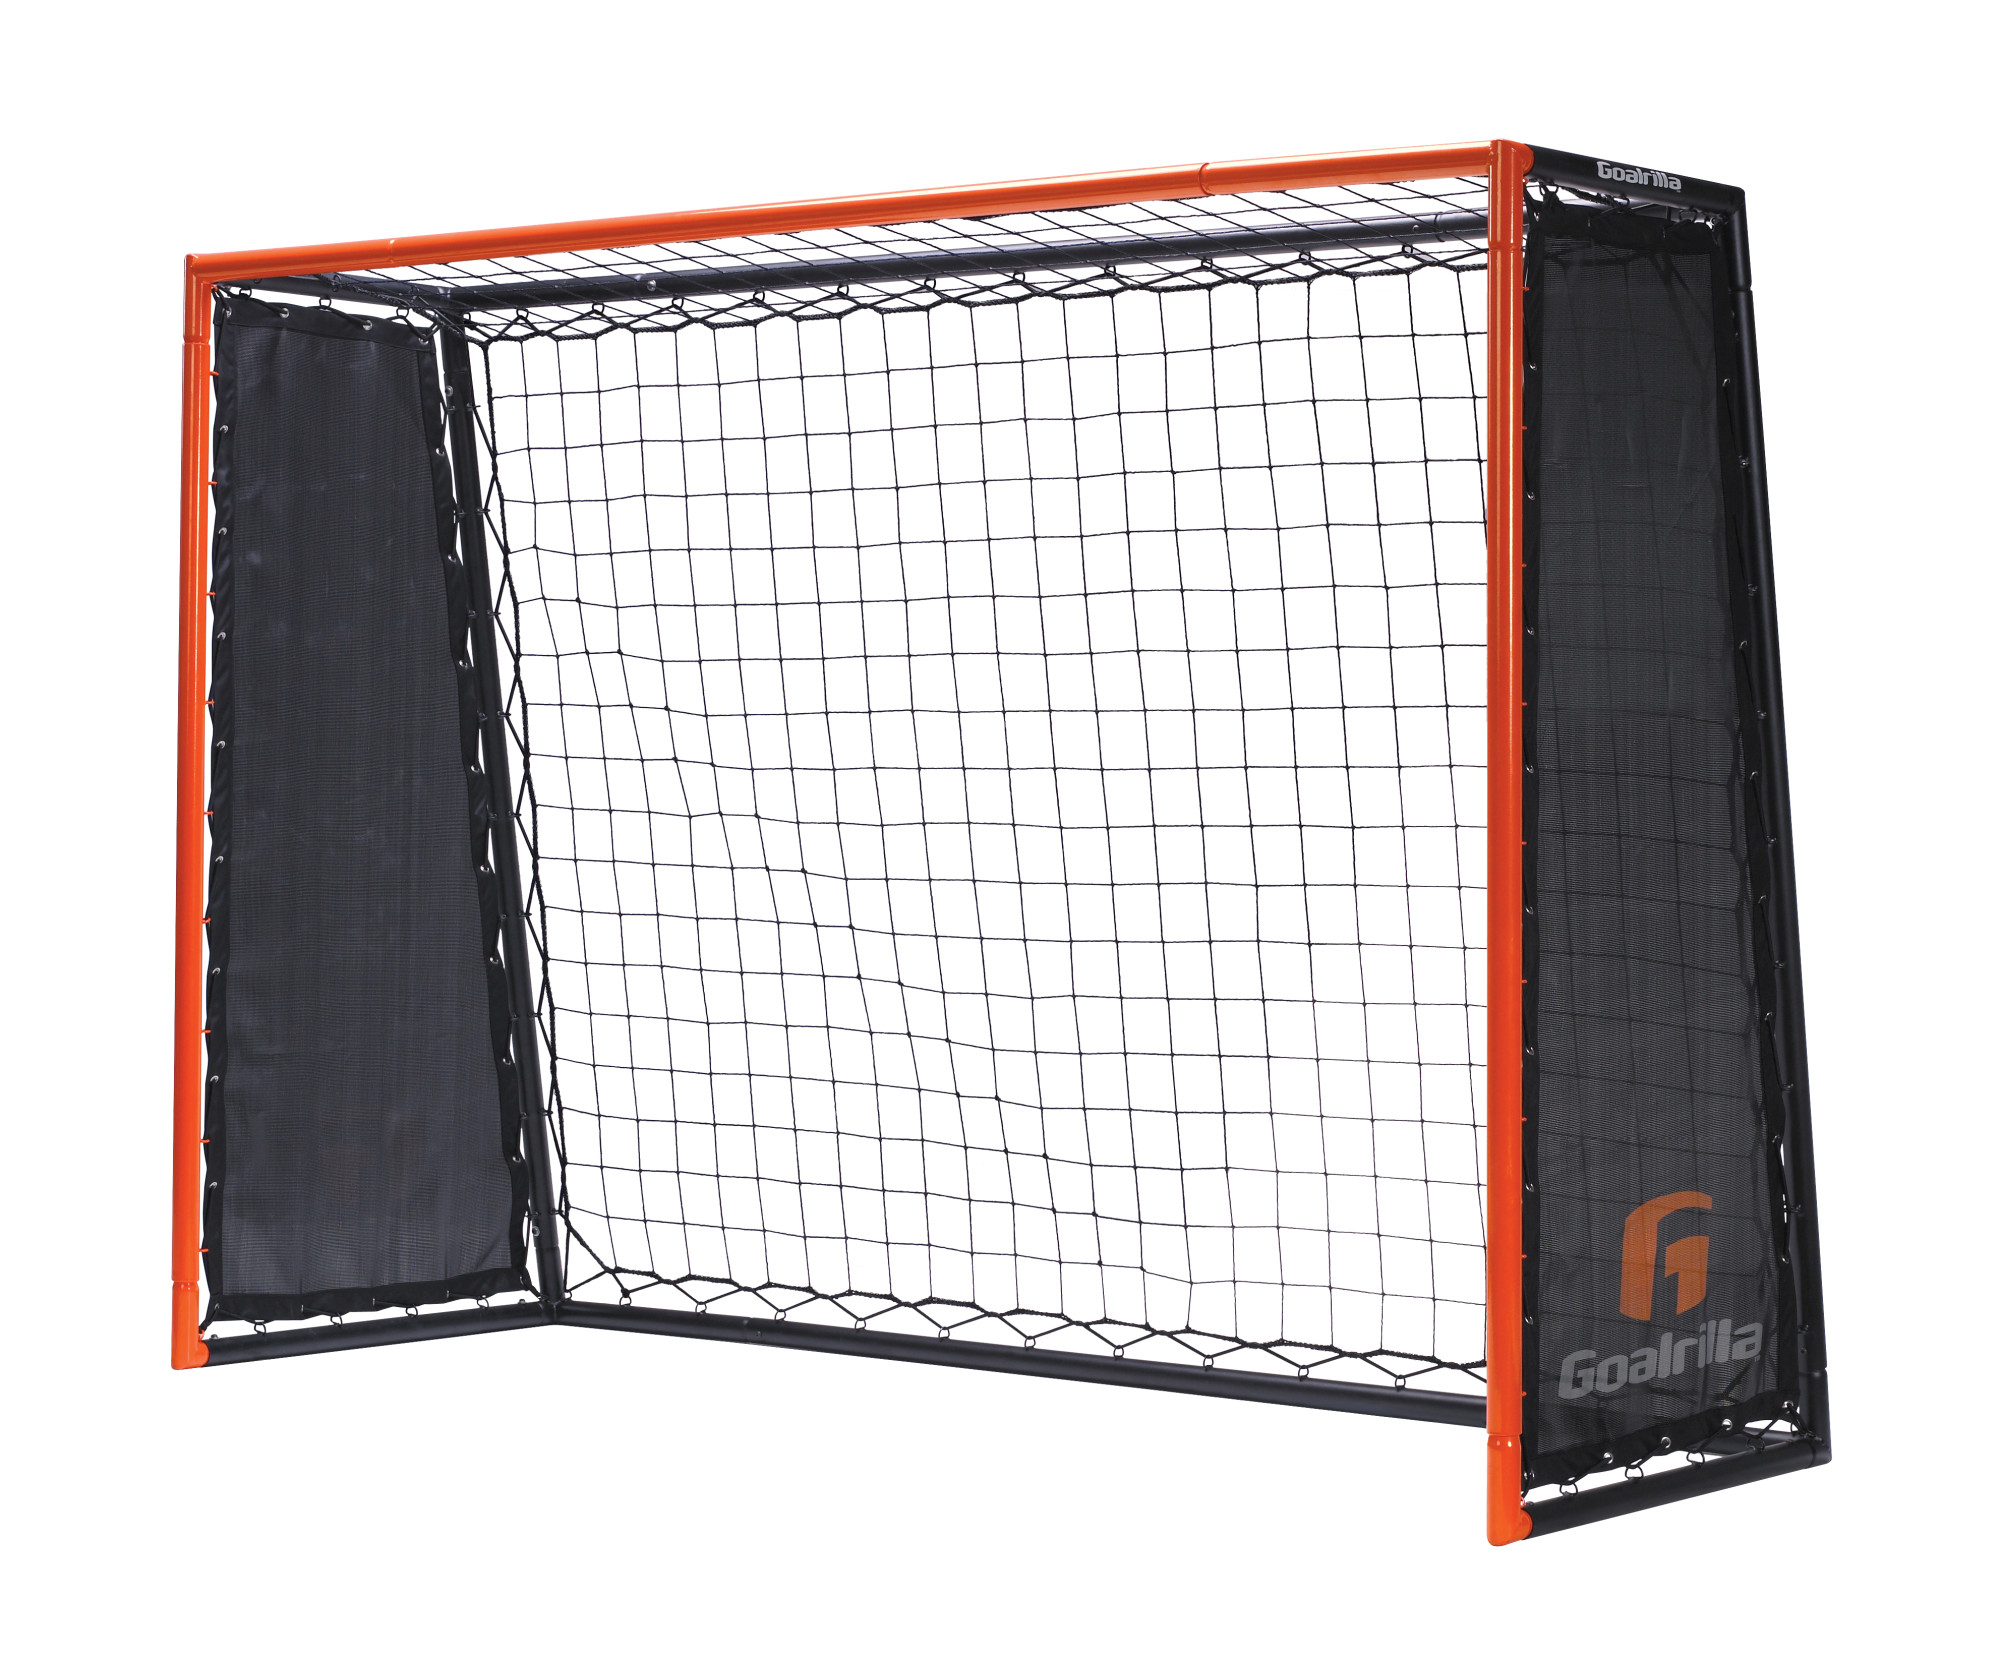 Goalrilla Striker Soccer Rebound Trainer with Double-Sided, Ultra-Responsive Rebounding Net and Goal by Goalrilla